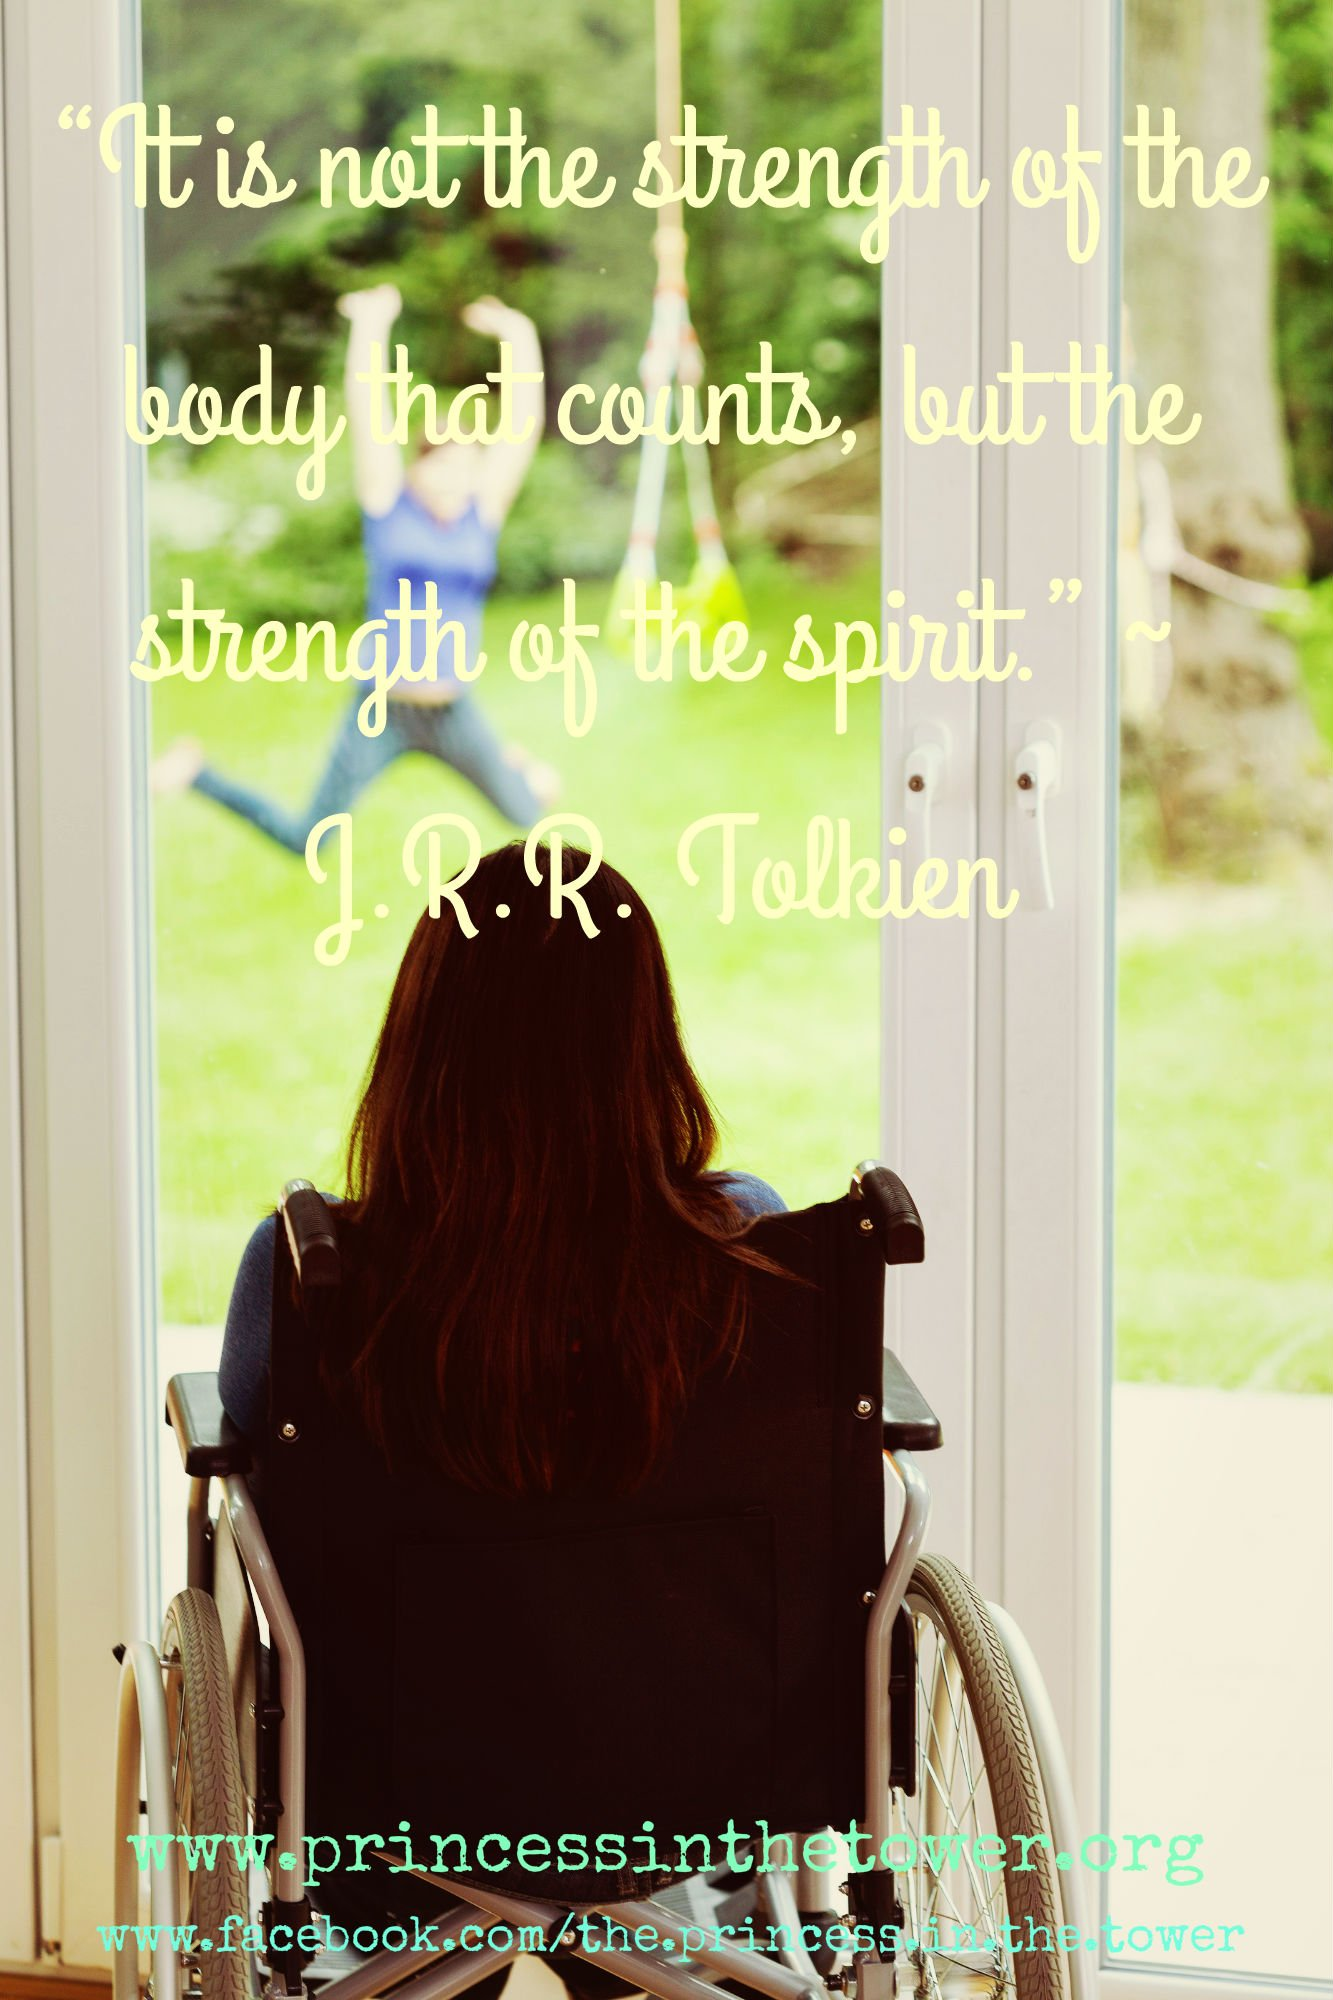 """It is not the strength of the body that counts, but the strength of the spirit."" ~ J.R.R. Tolkien"